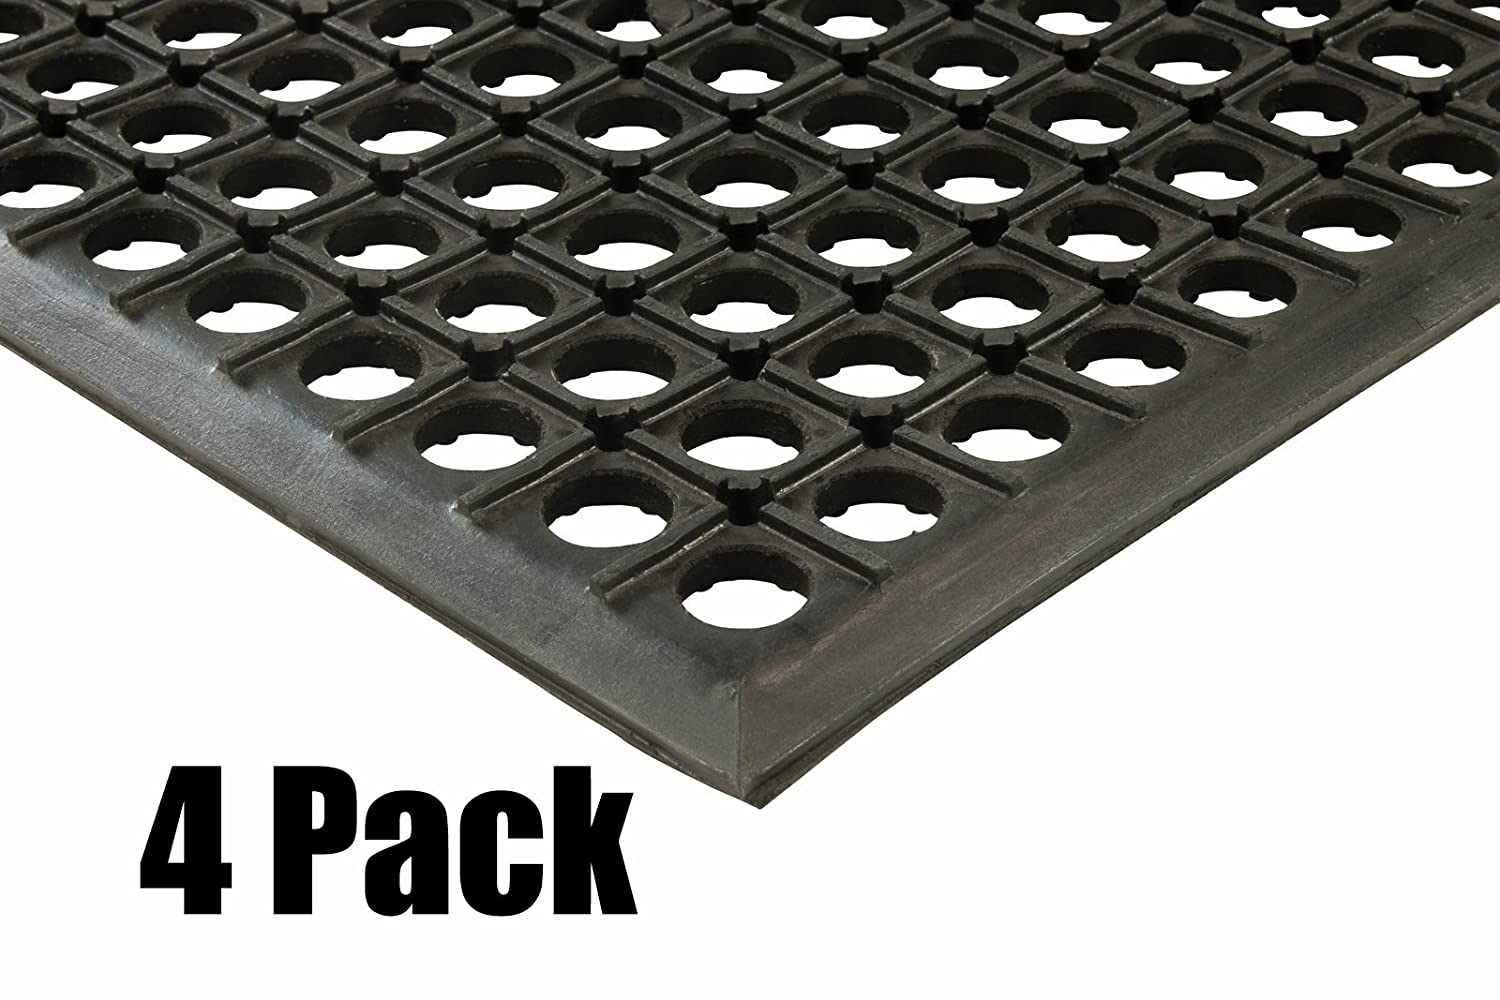 (4) Erie Tools 2x3 Rubber Drainage Floor Mat 24